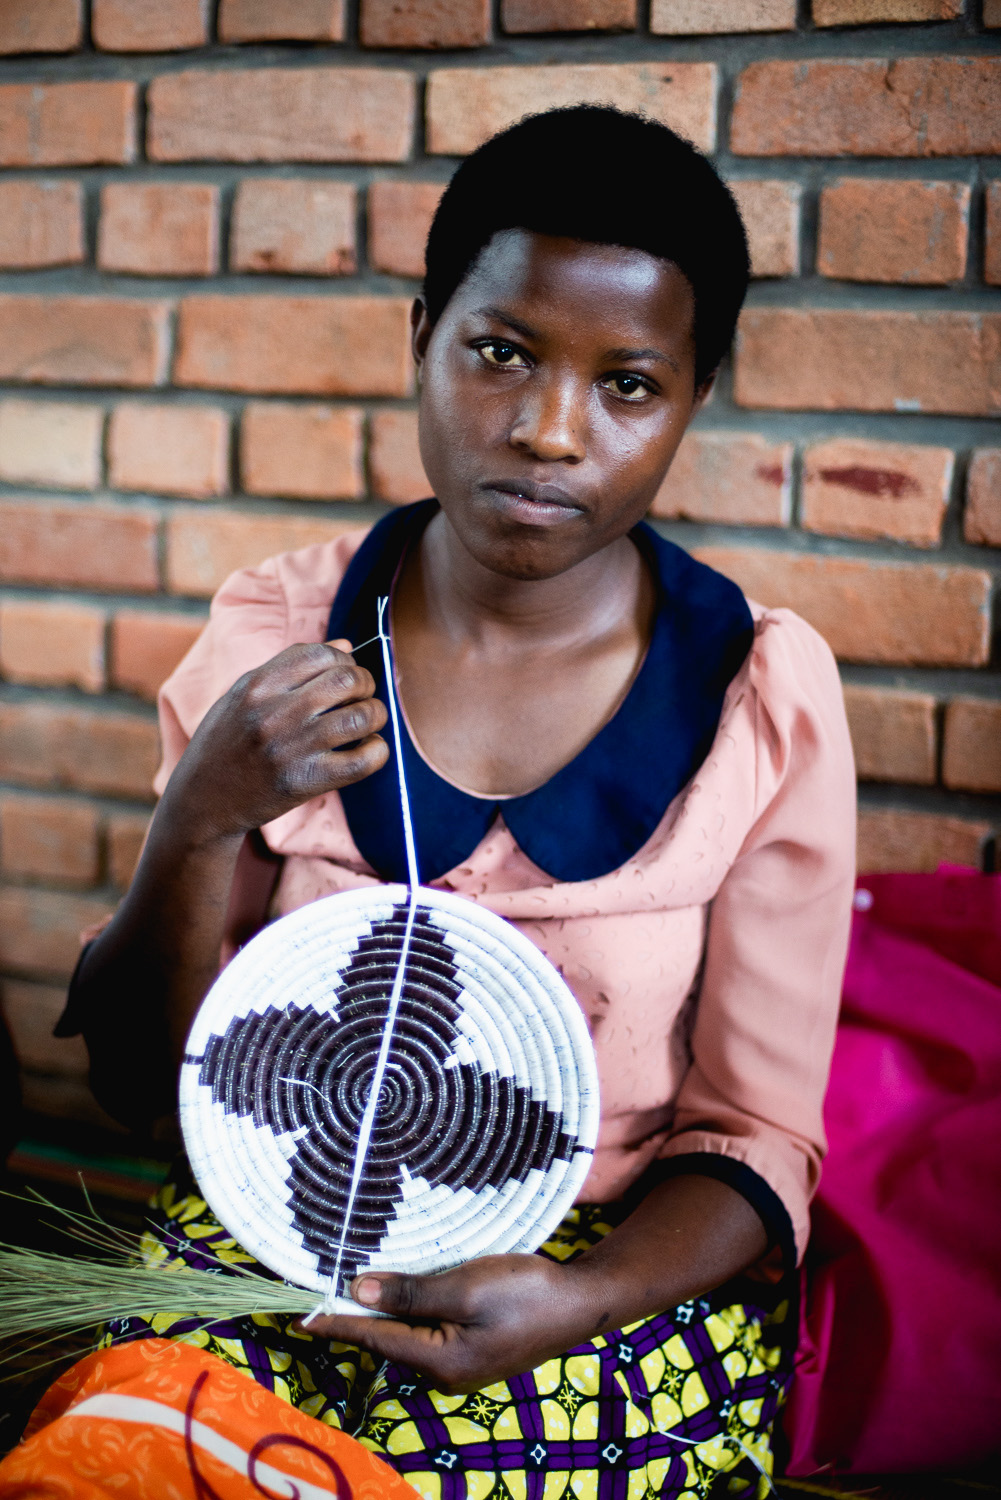 Agaseke basket weaving at Women for Women opportunity center in Kayonzo, Rwanda